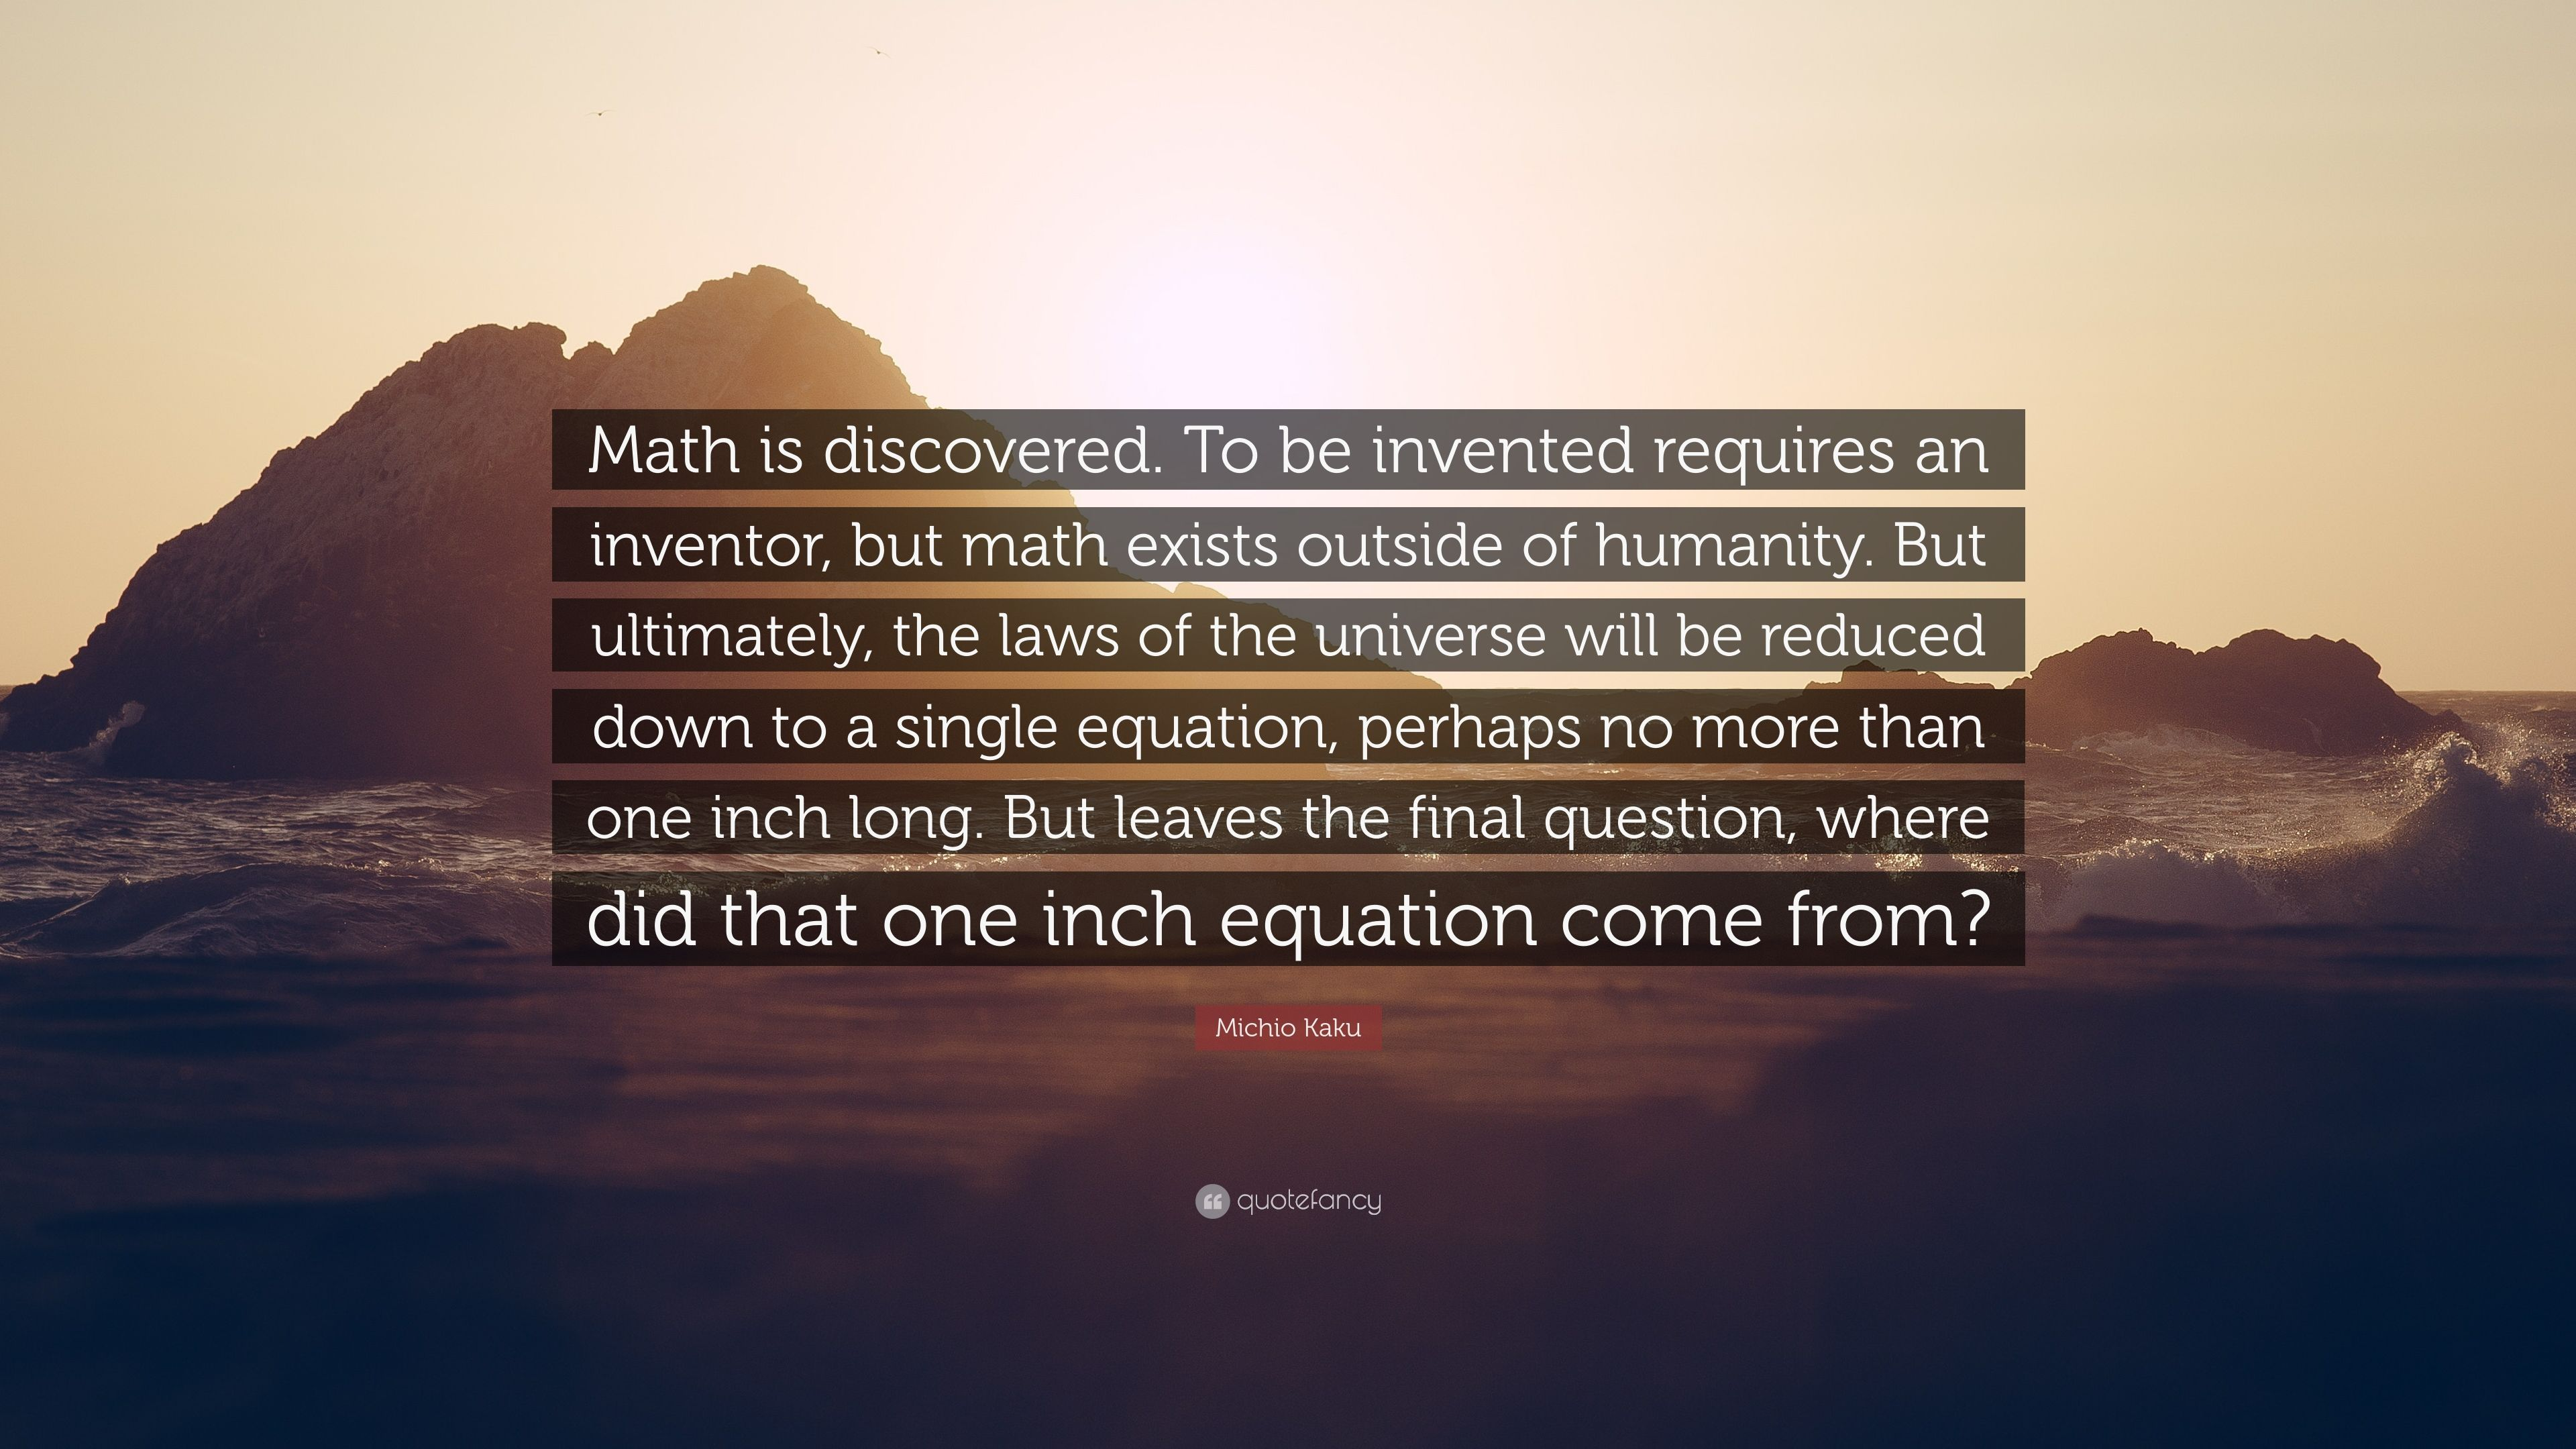 is math discovered or invented Children in mexico are learning maths using methods invented by their   advantages — the power to challenge inconsistencies where they discover them.